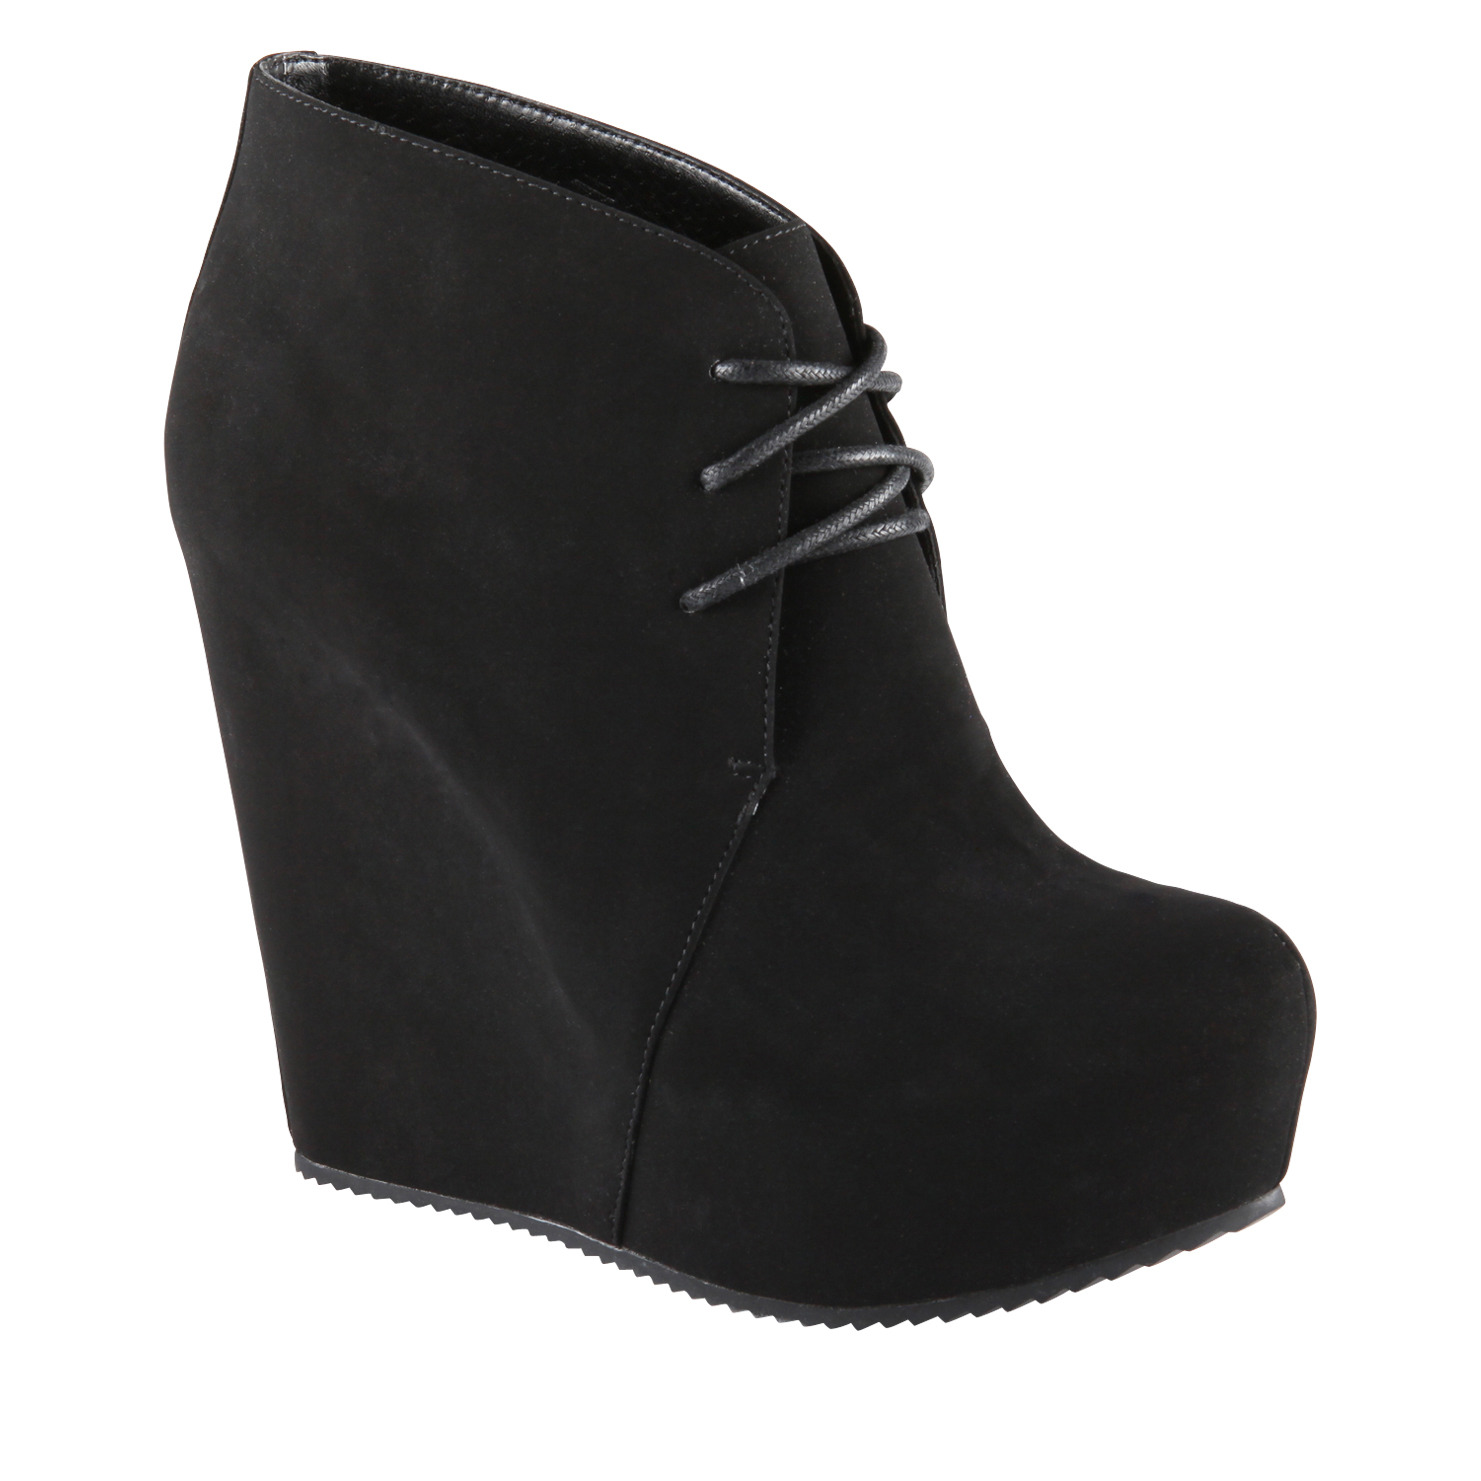 Aldo Shoes Find In Store